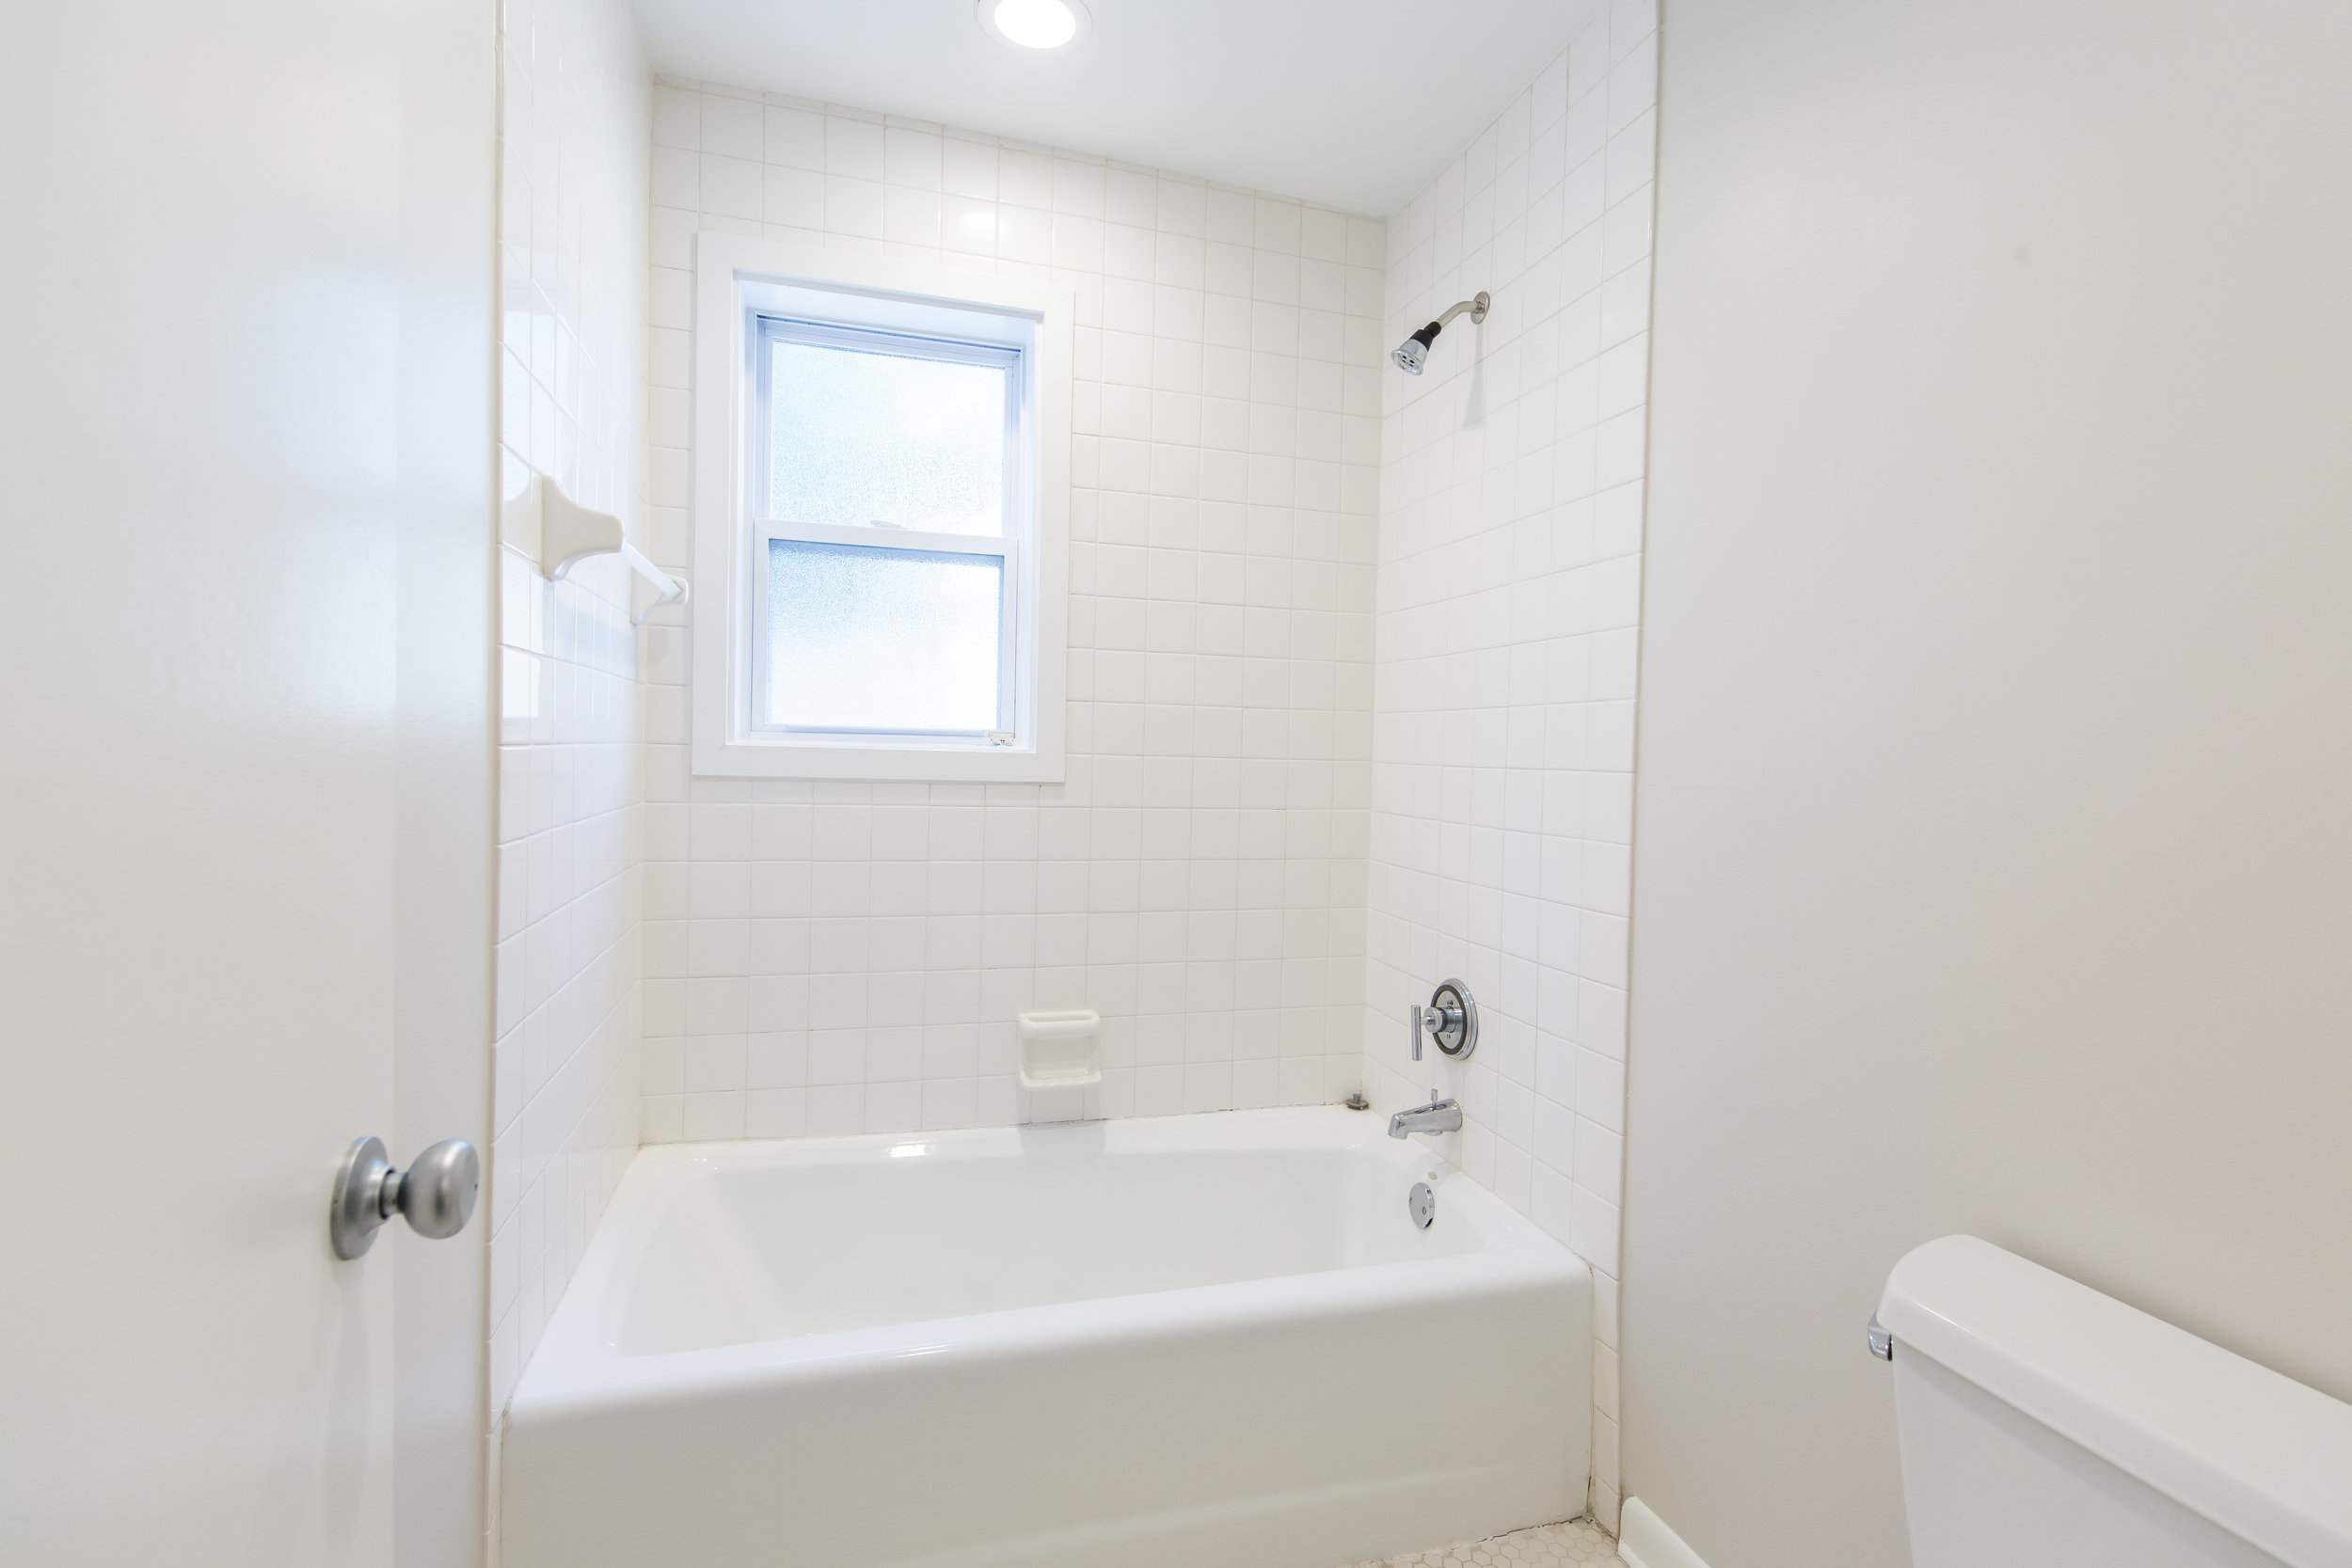 575 Flat Shoals Unit 9-Bath Shower.jpg